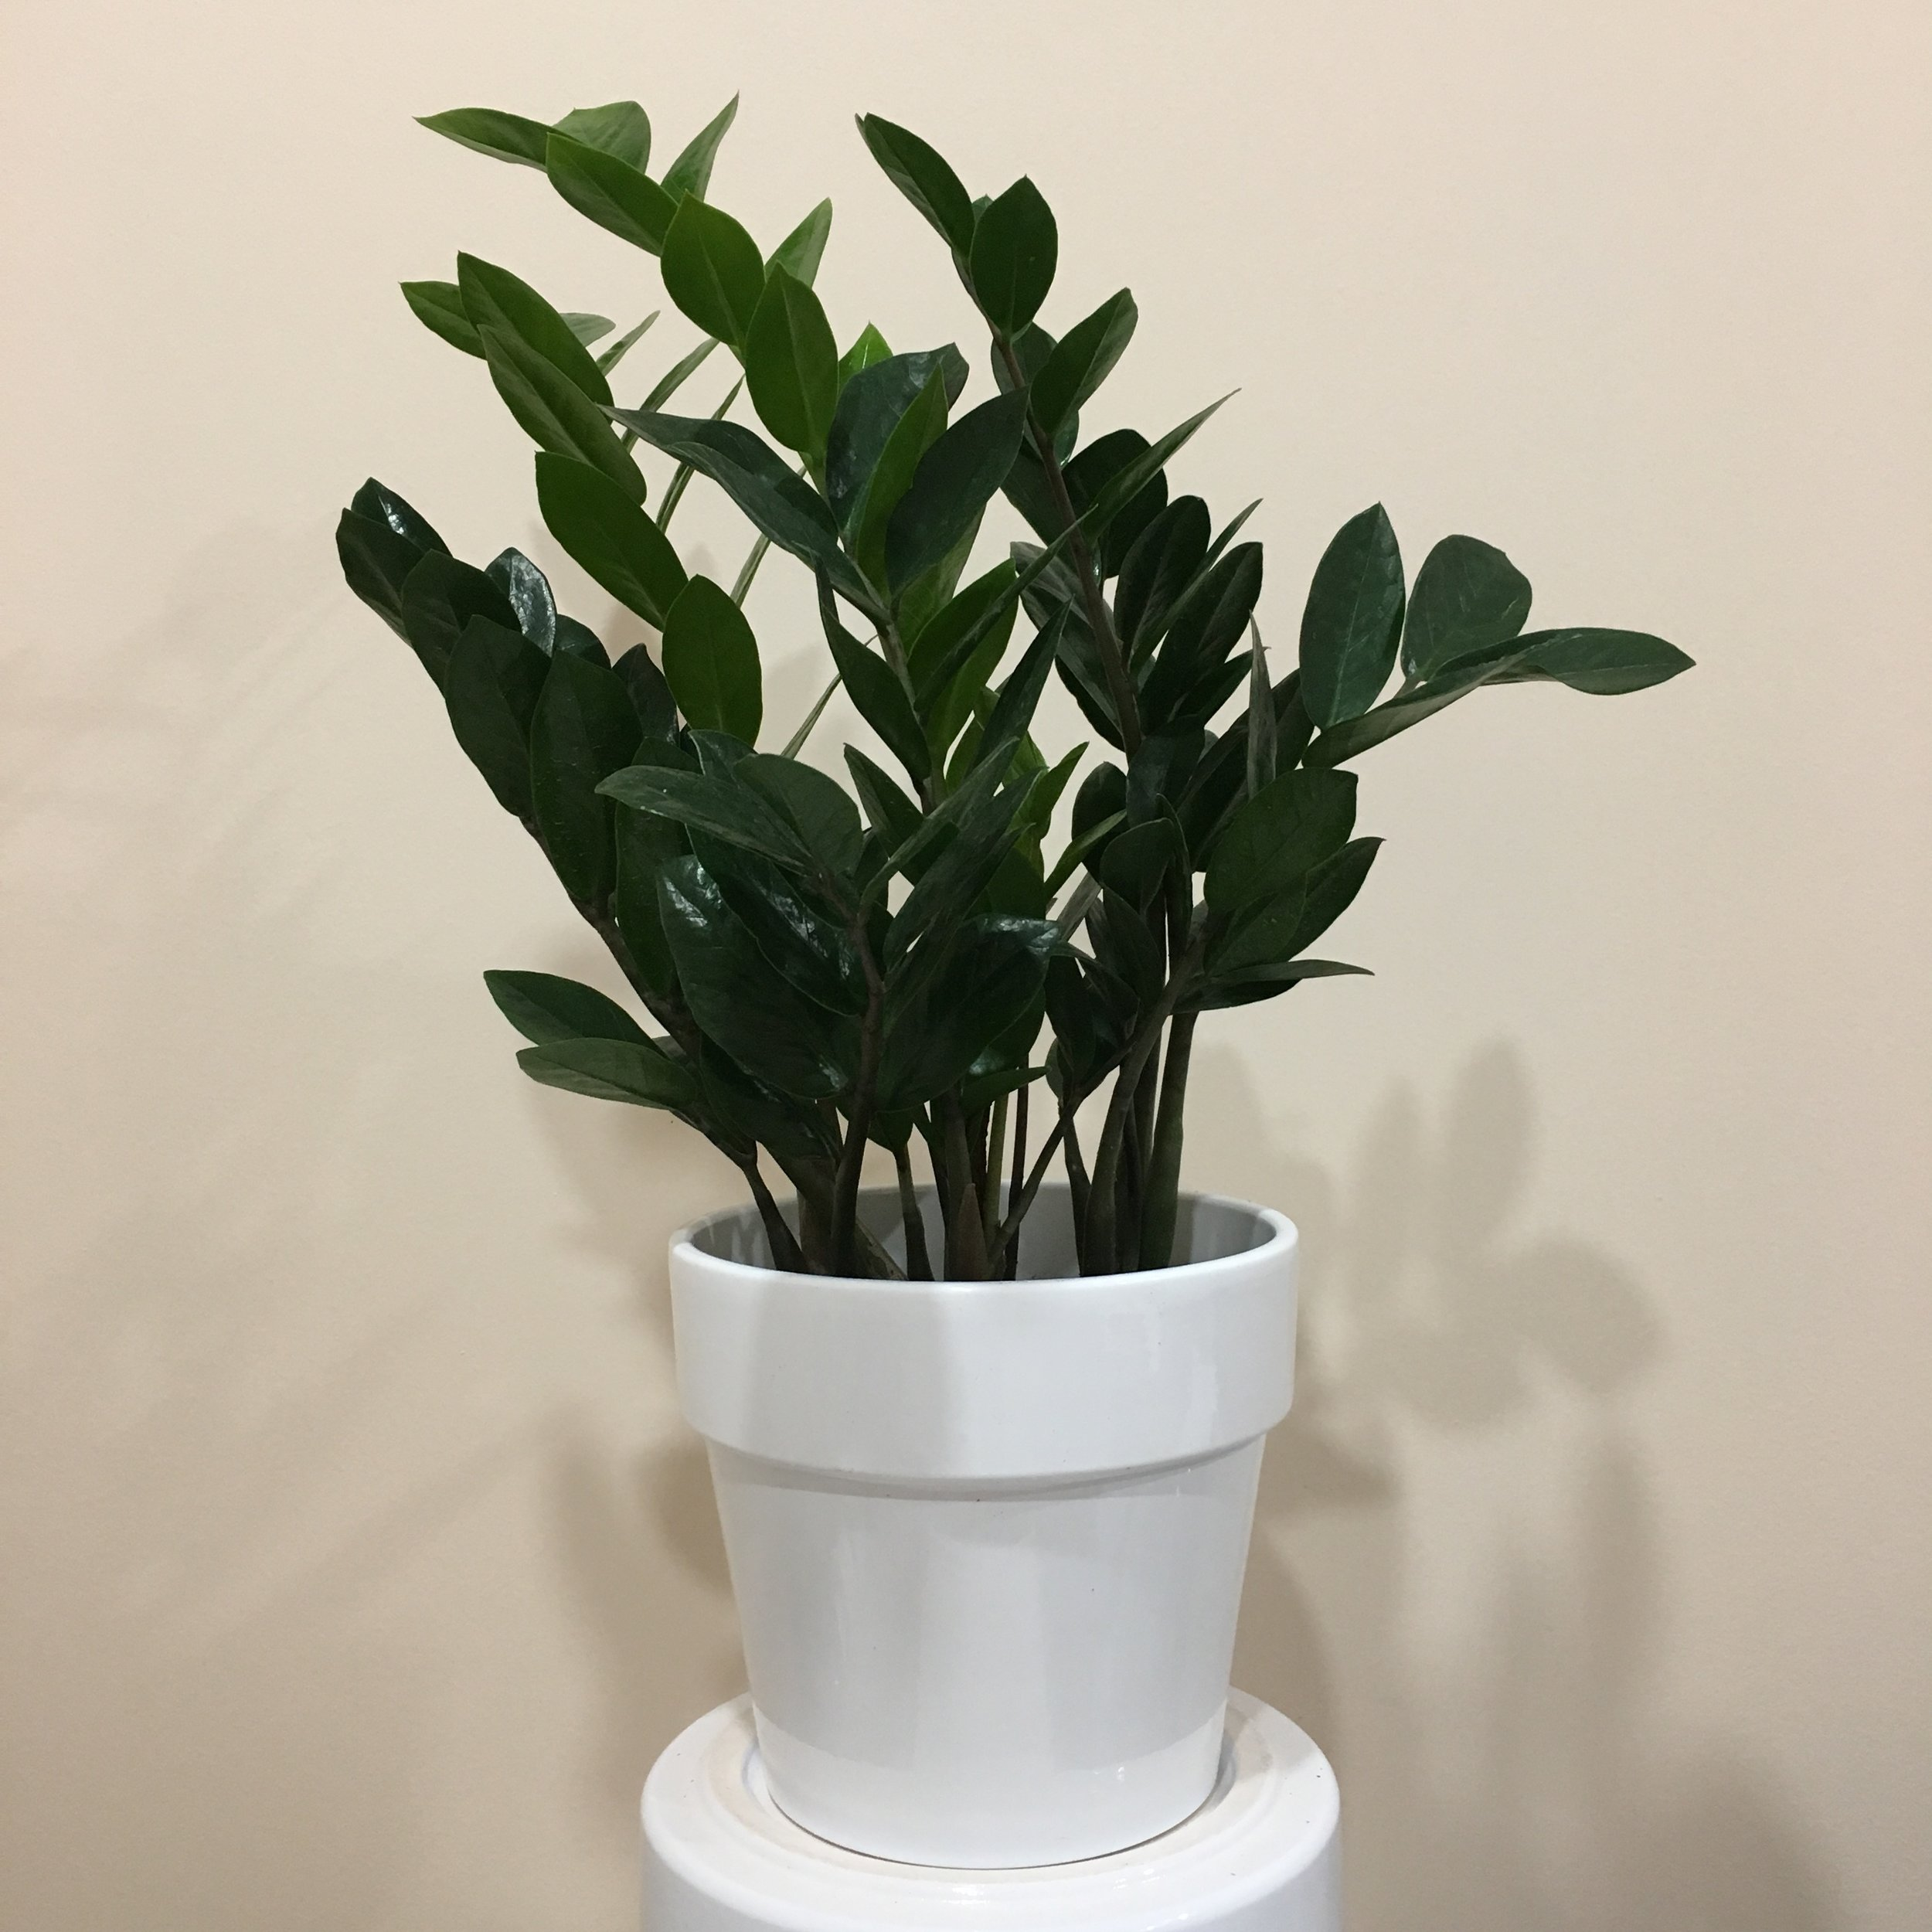 Zz - Light - Low, indirect light.Water - Zz plants only need to be watered once a month. This is because they contain underground rhizomes that can rot easily.Origin - AfricaFun Fact - This is the best plant for beginners, or brown thumbs, due to its low light and water needs.